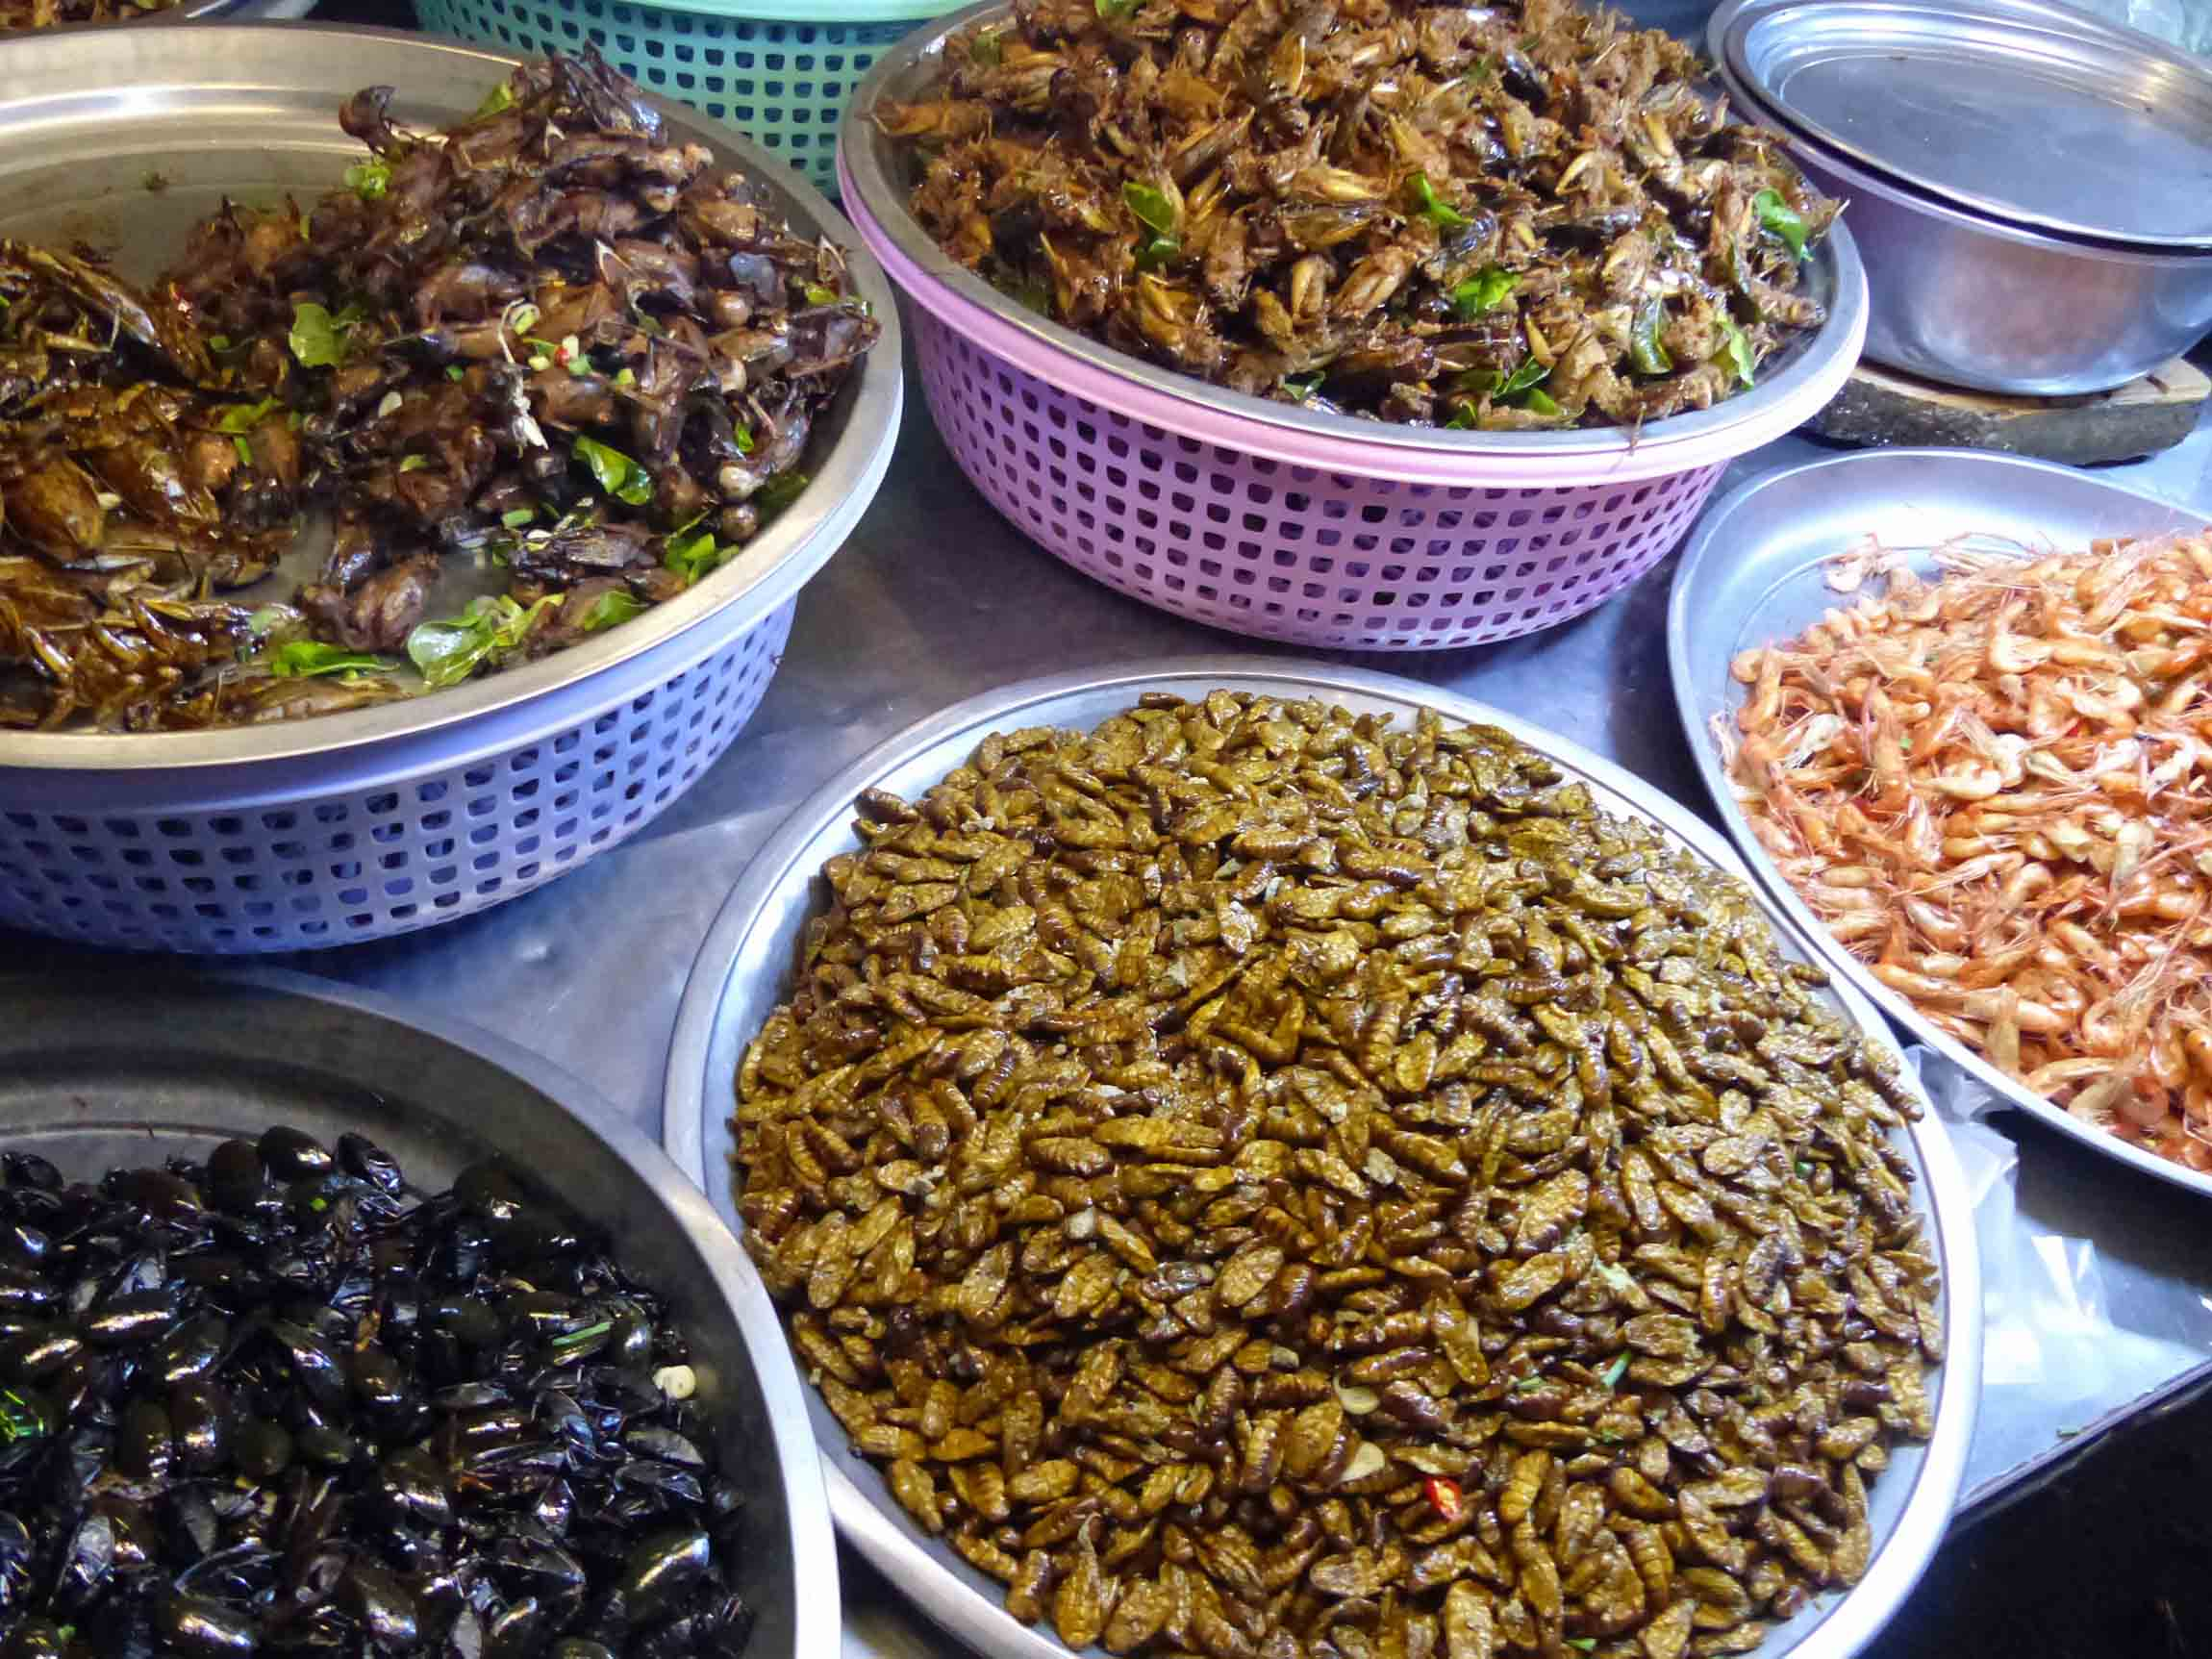 Platters of fried insects